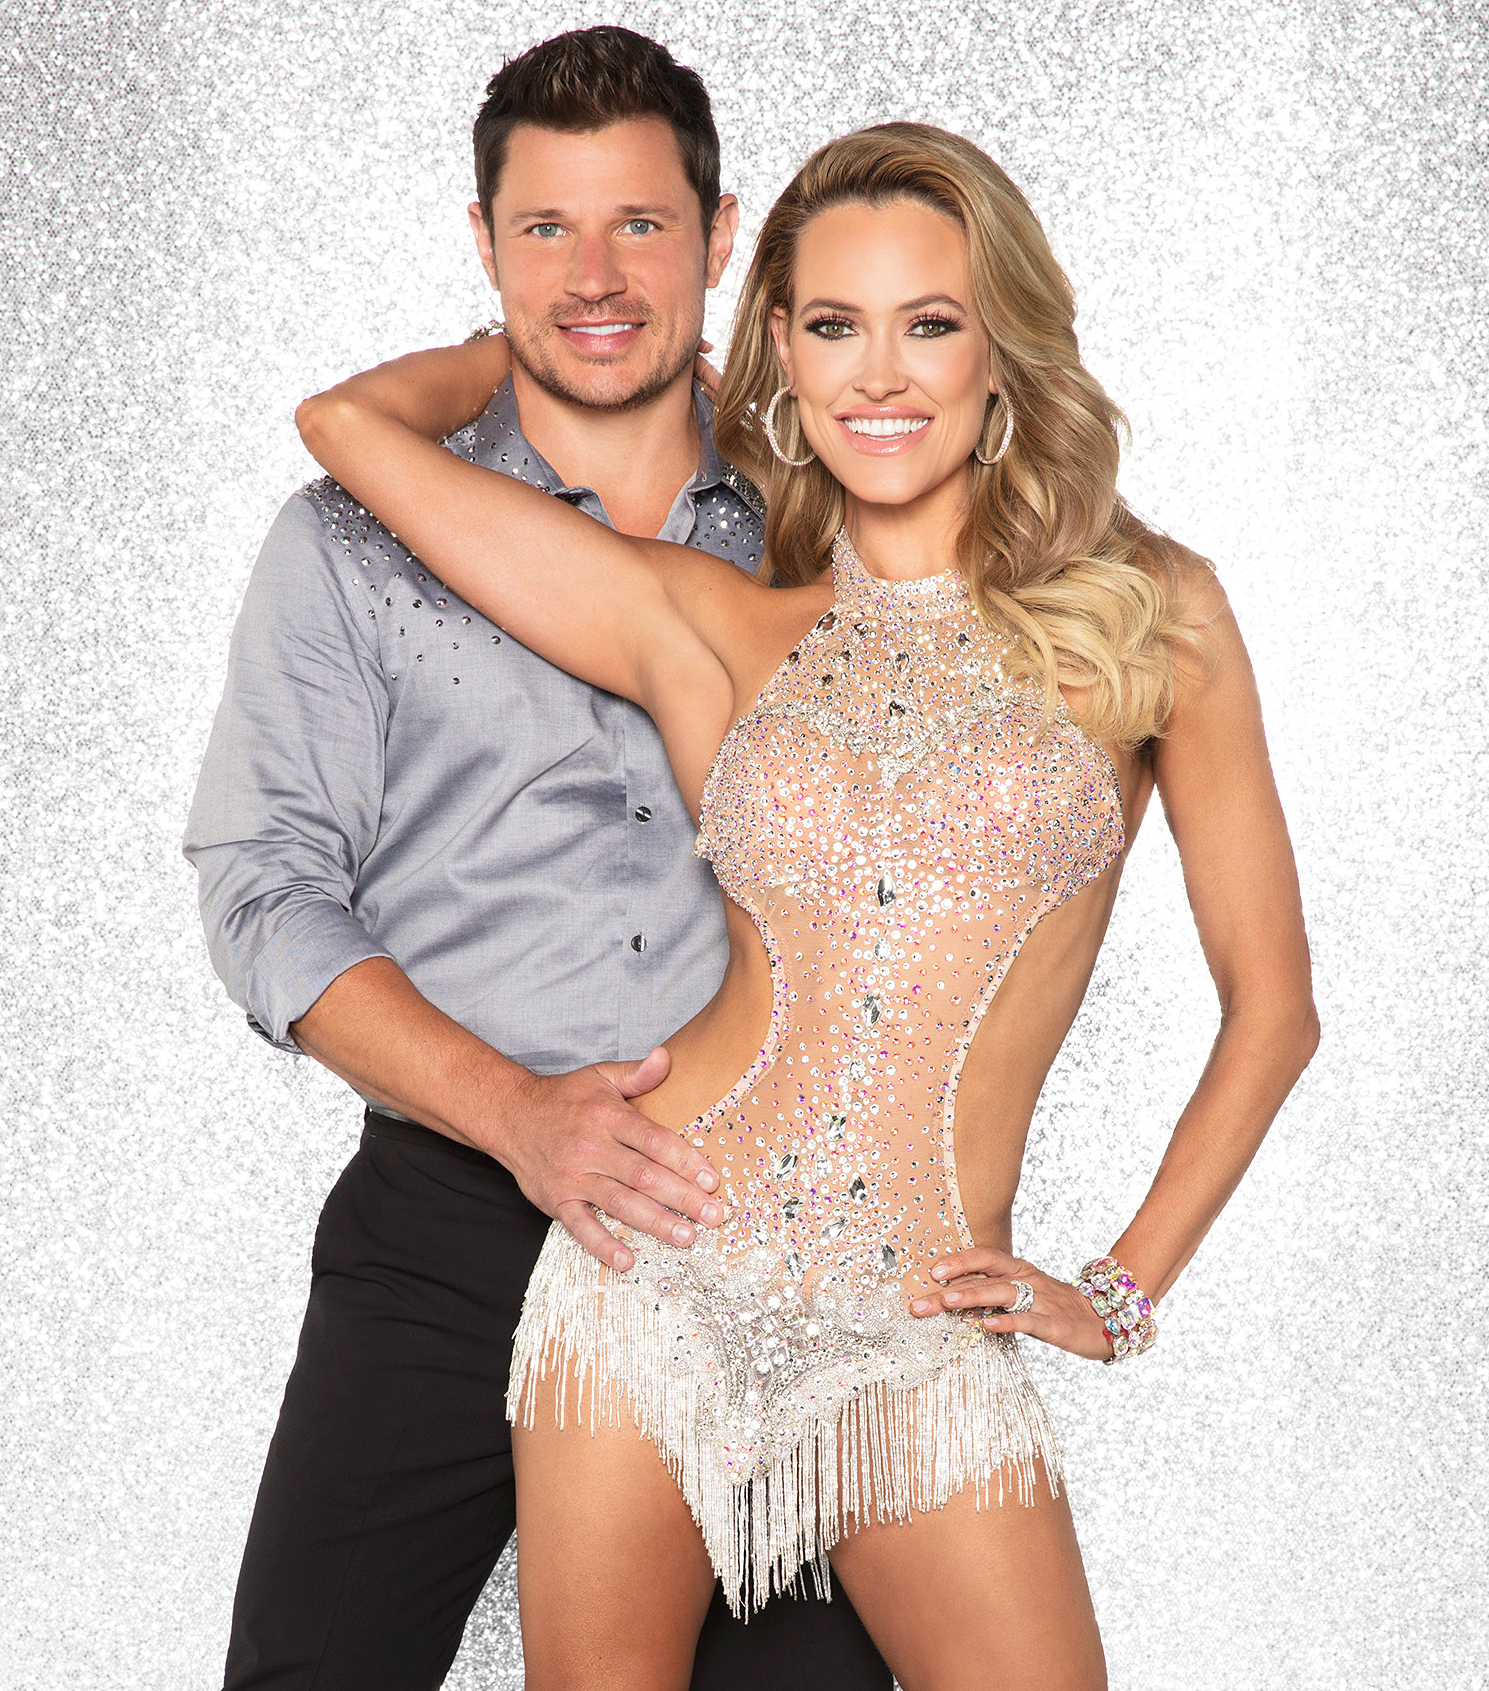 Nick Lachey Peta MURGATROYD Dancing With The Stars DWTS